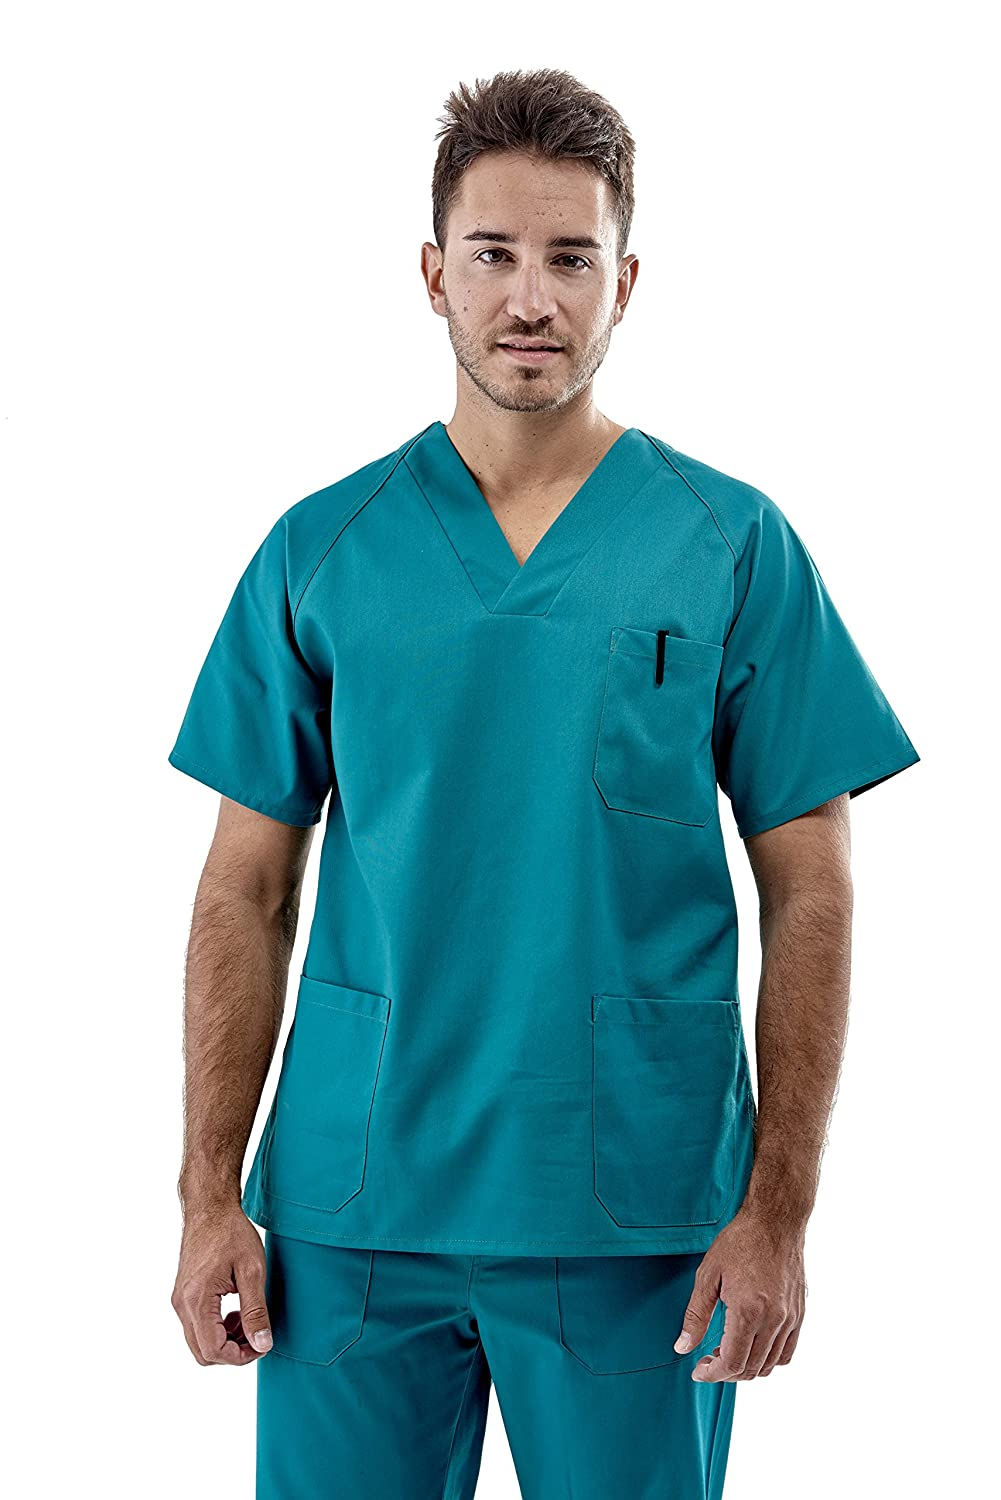 Medical Scrub TUNIC + TROUSER SET (2XL) Rafael Carreno 1010-11 Ensemble Blouse + Pantalons MEDI